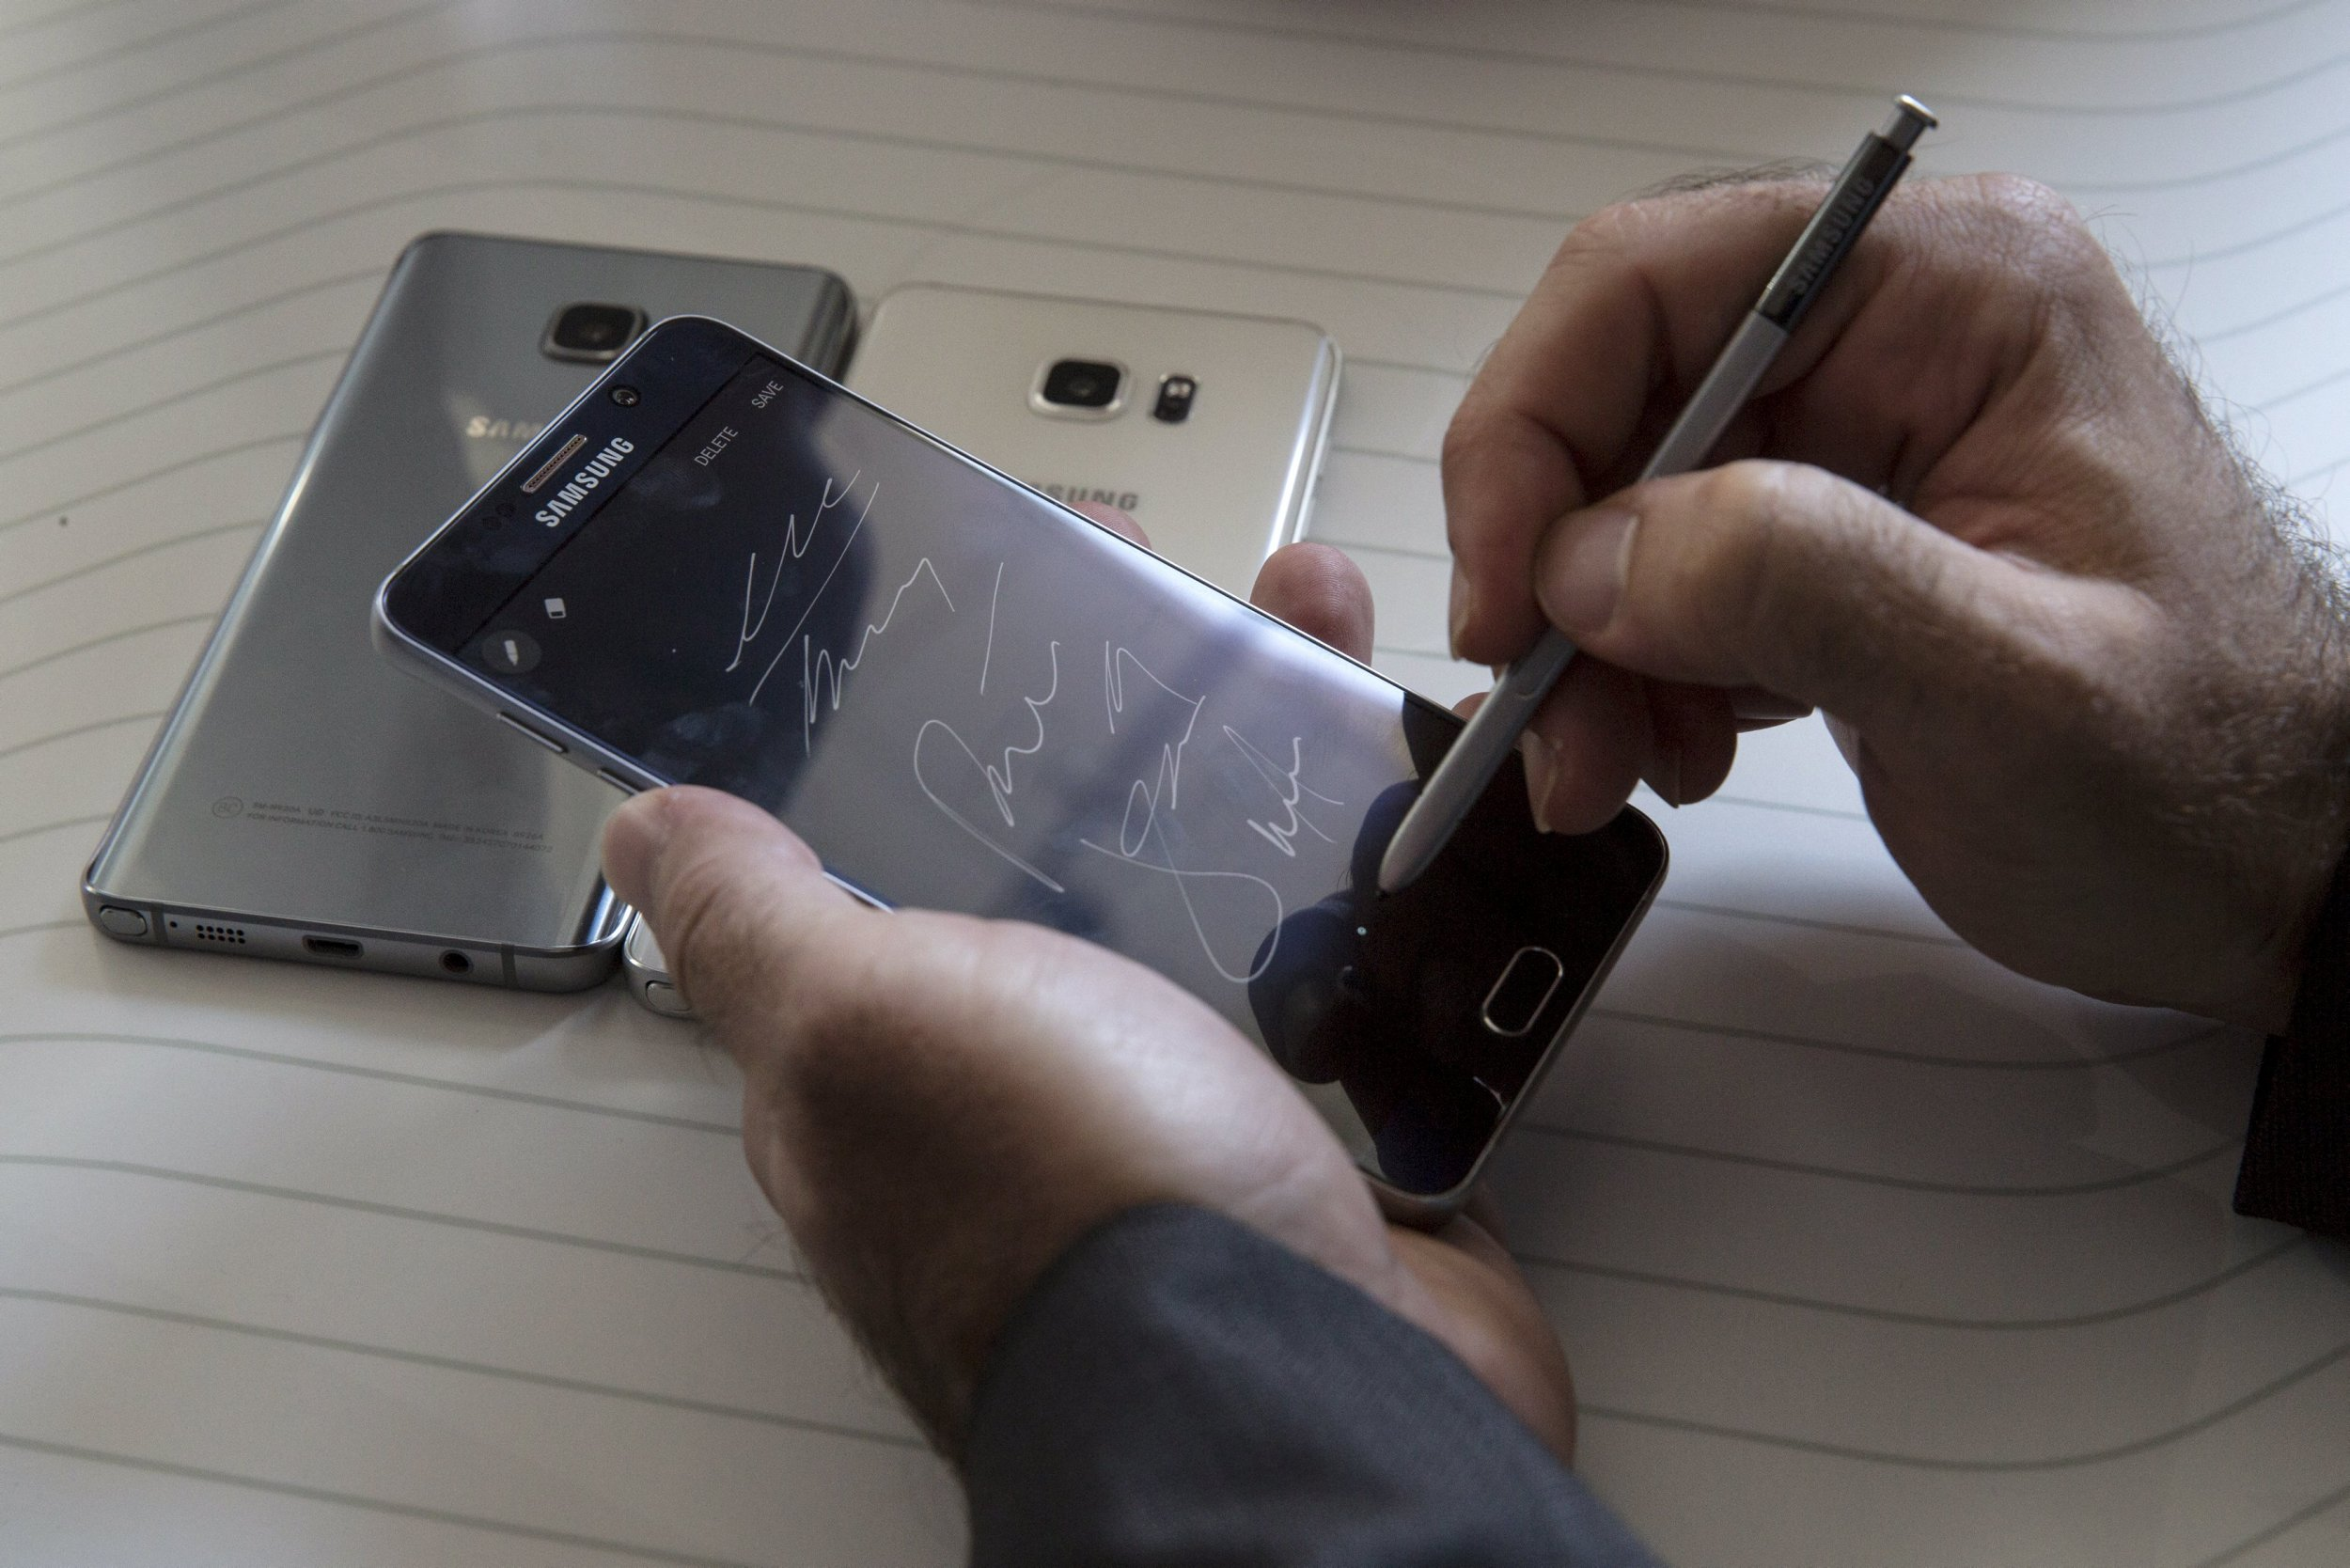 Samsung Galaxy Note 5 Tries to Stay Ahead of Apple